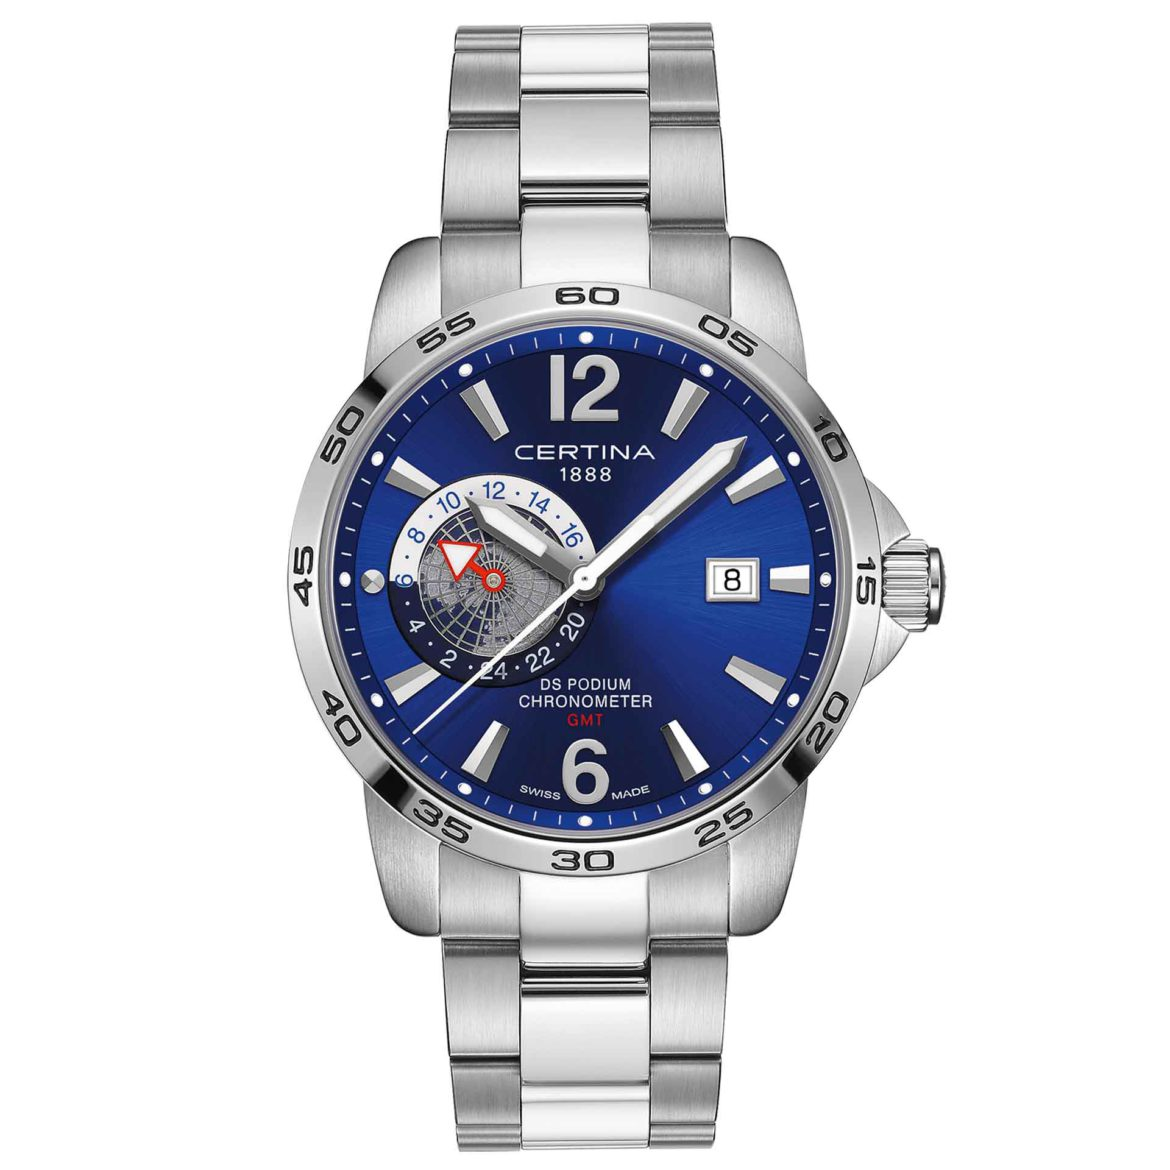 Certina DS Podium GMT Chronometer